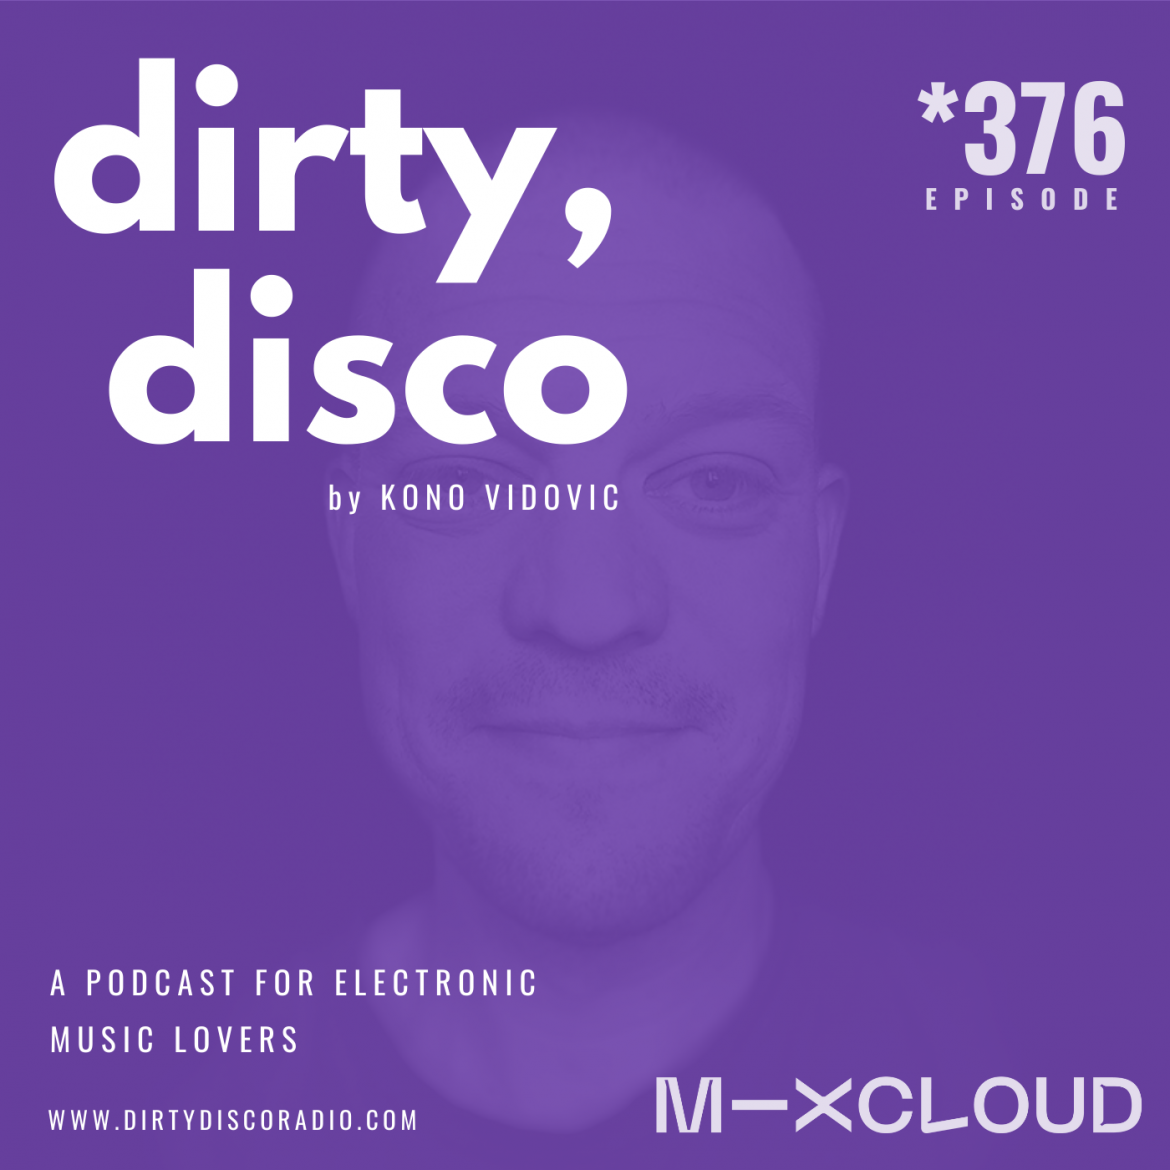 New electronic music monday | Dirty Disco 376